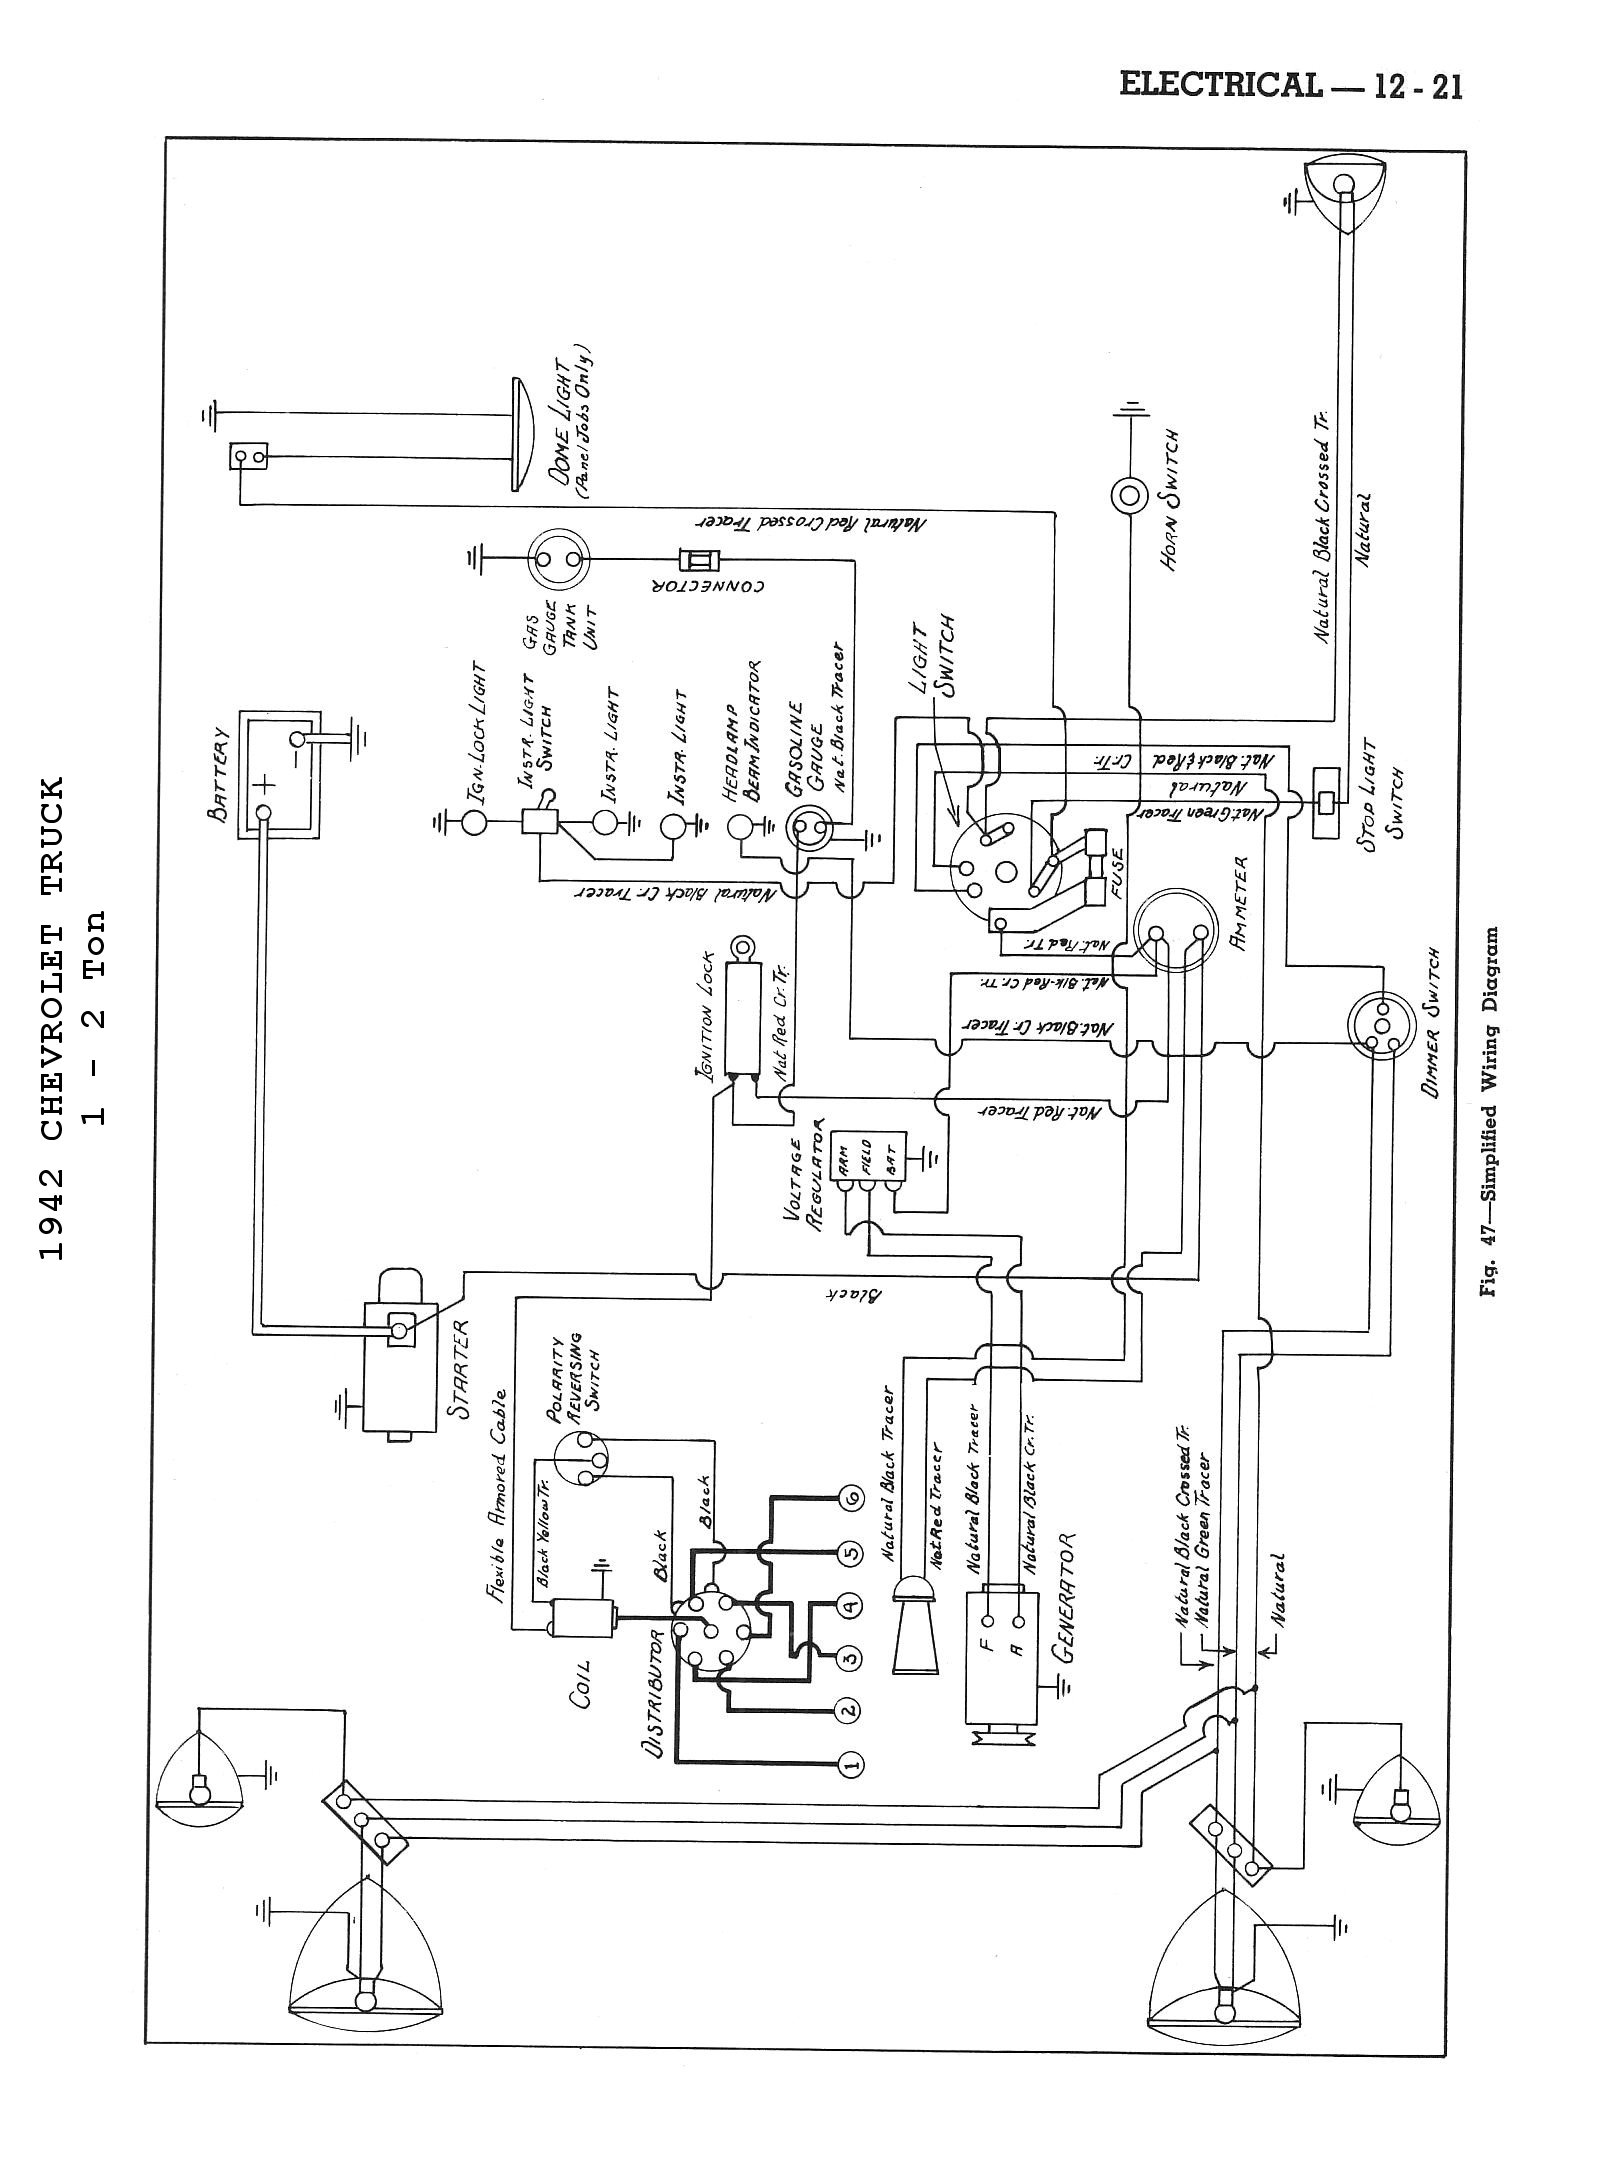 Wiring Diagram For 1935 Desoto on 1932 chevrolet brake parts